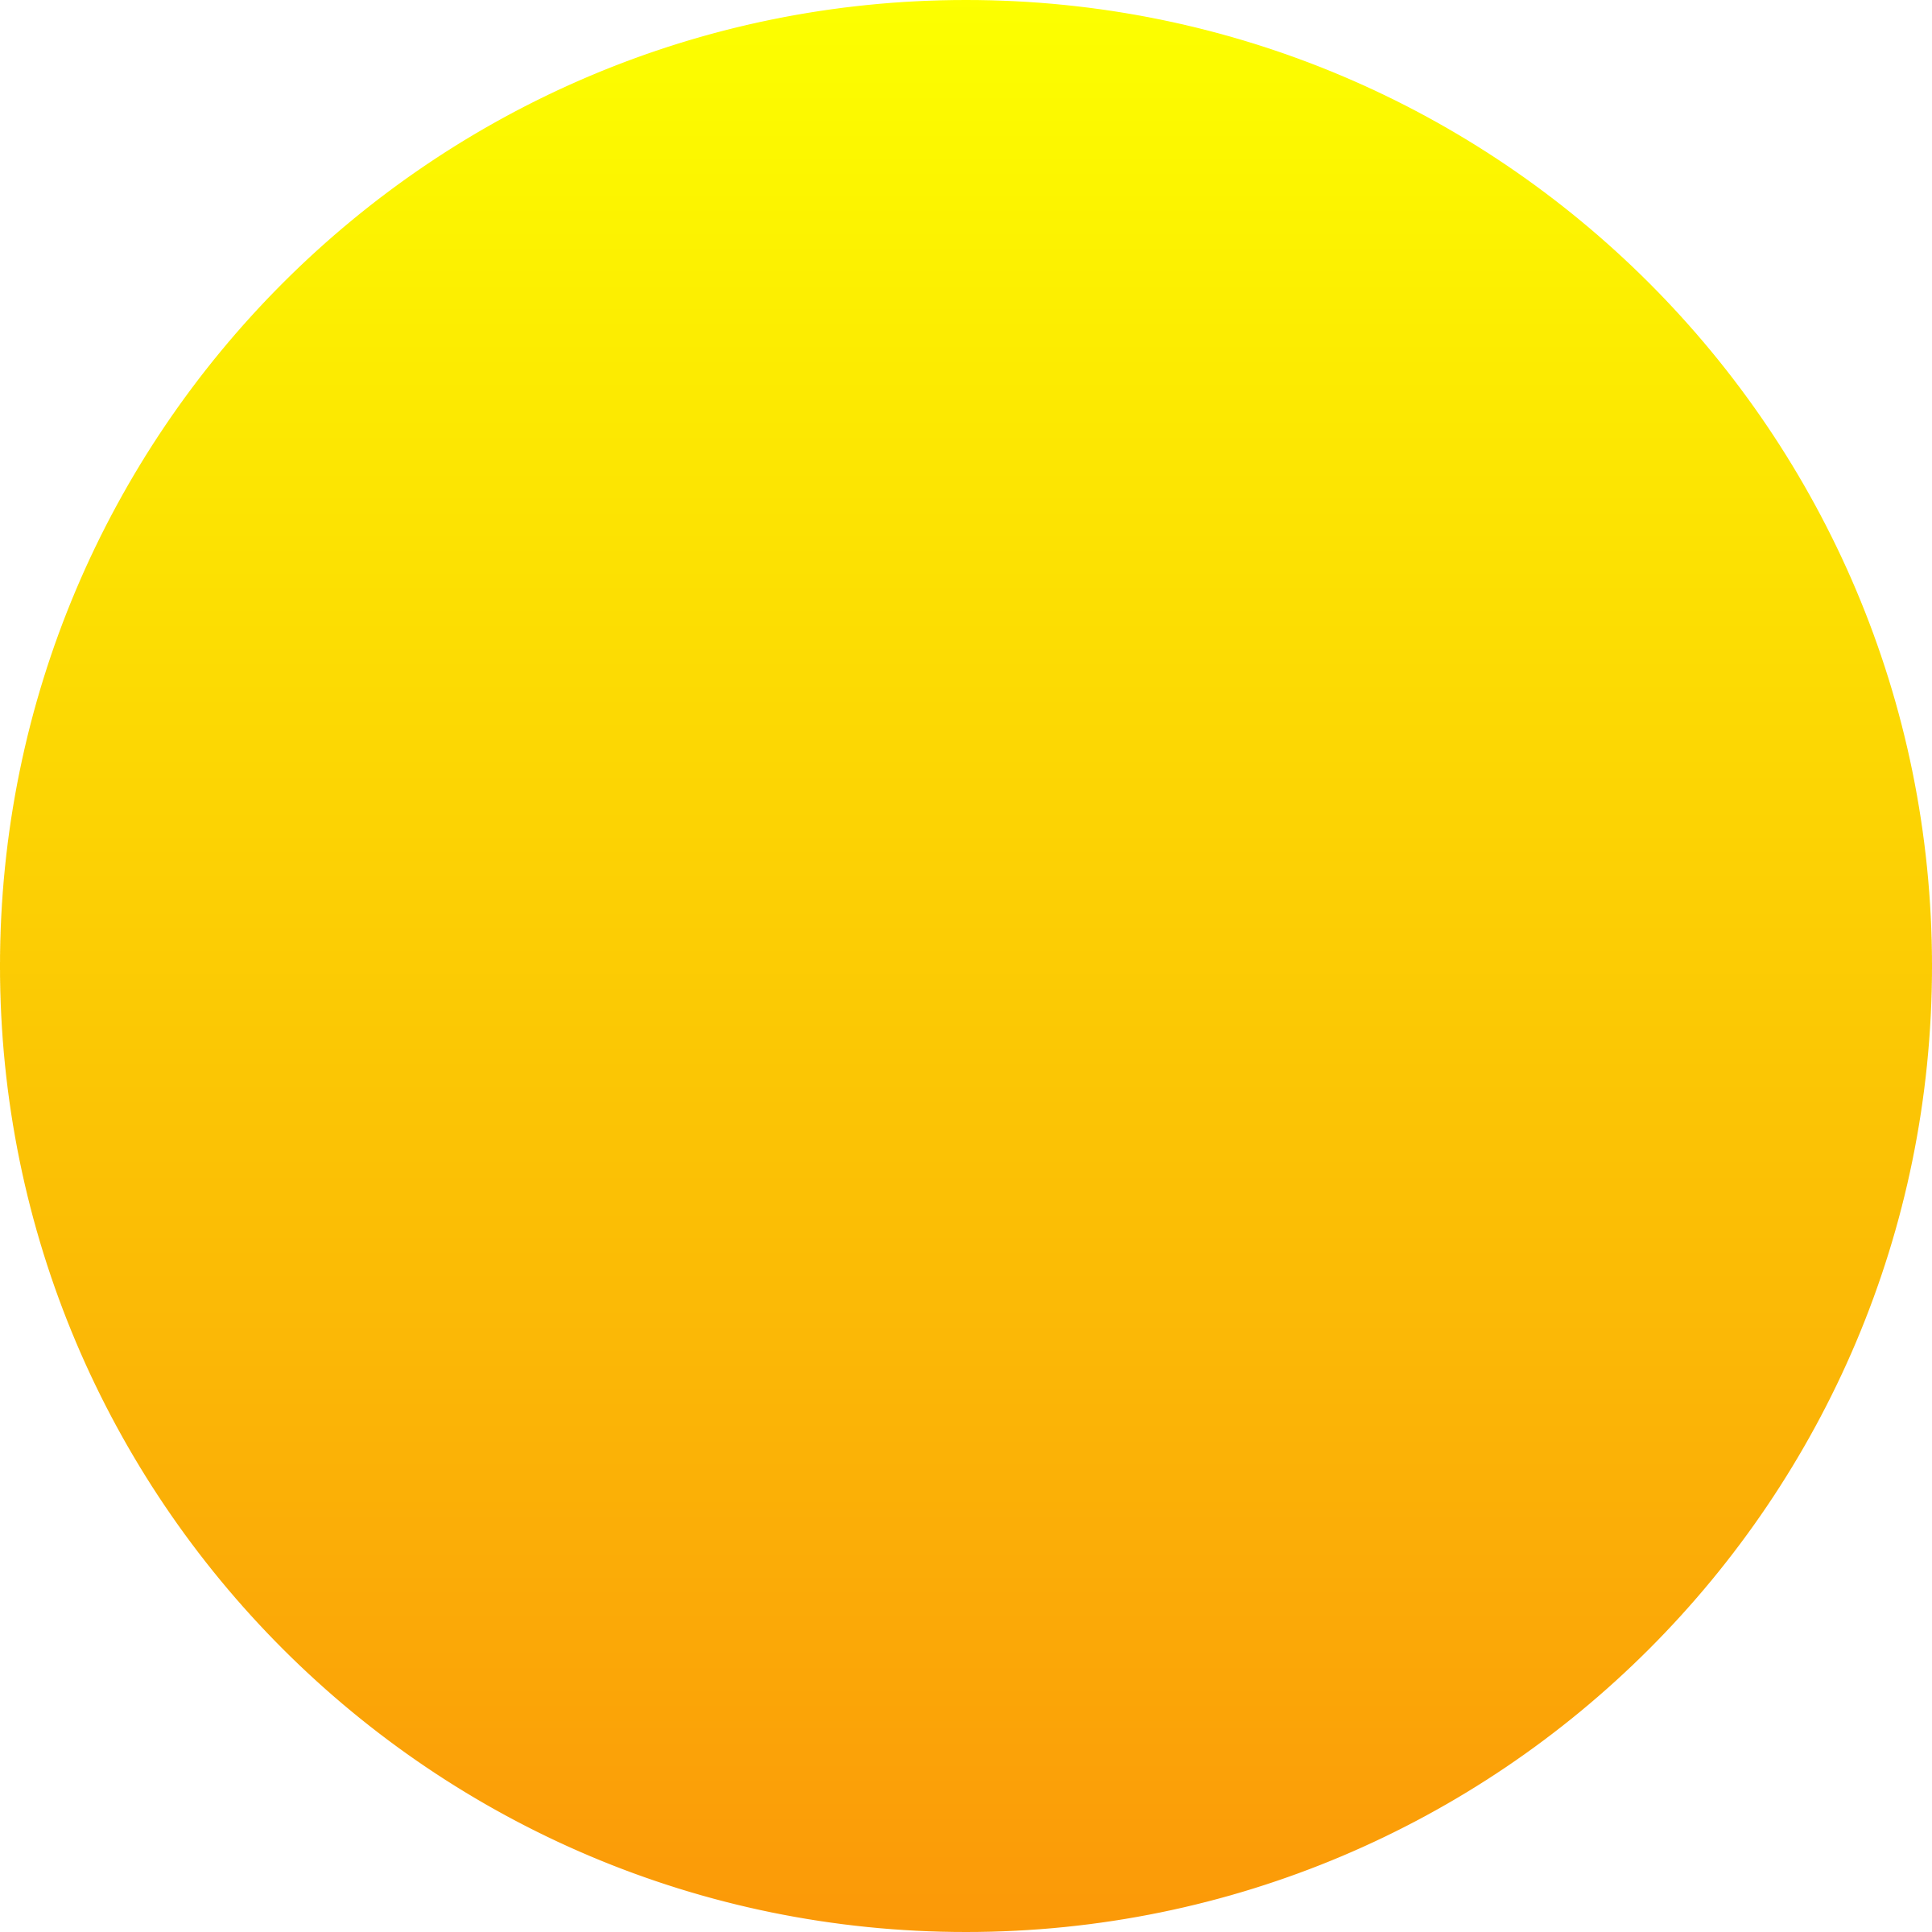 Nature clipart sun and moon #7